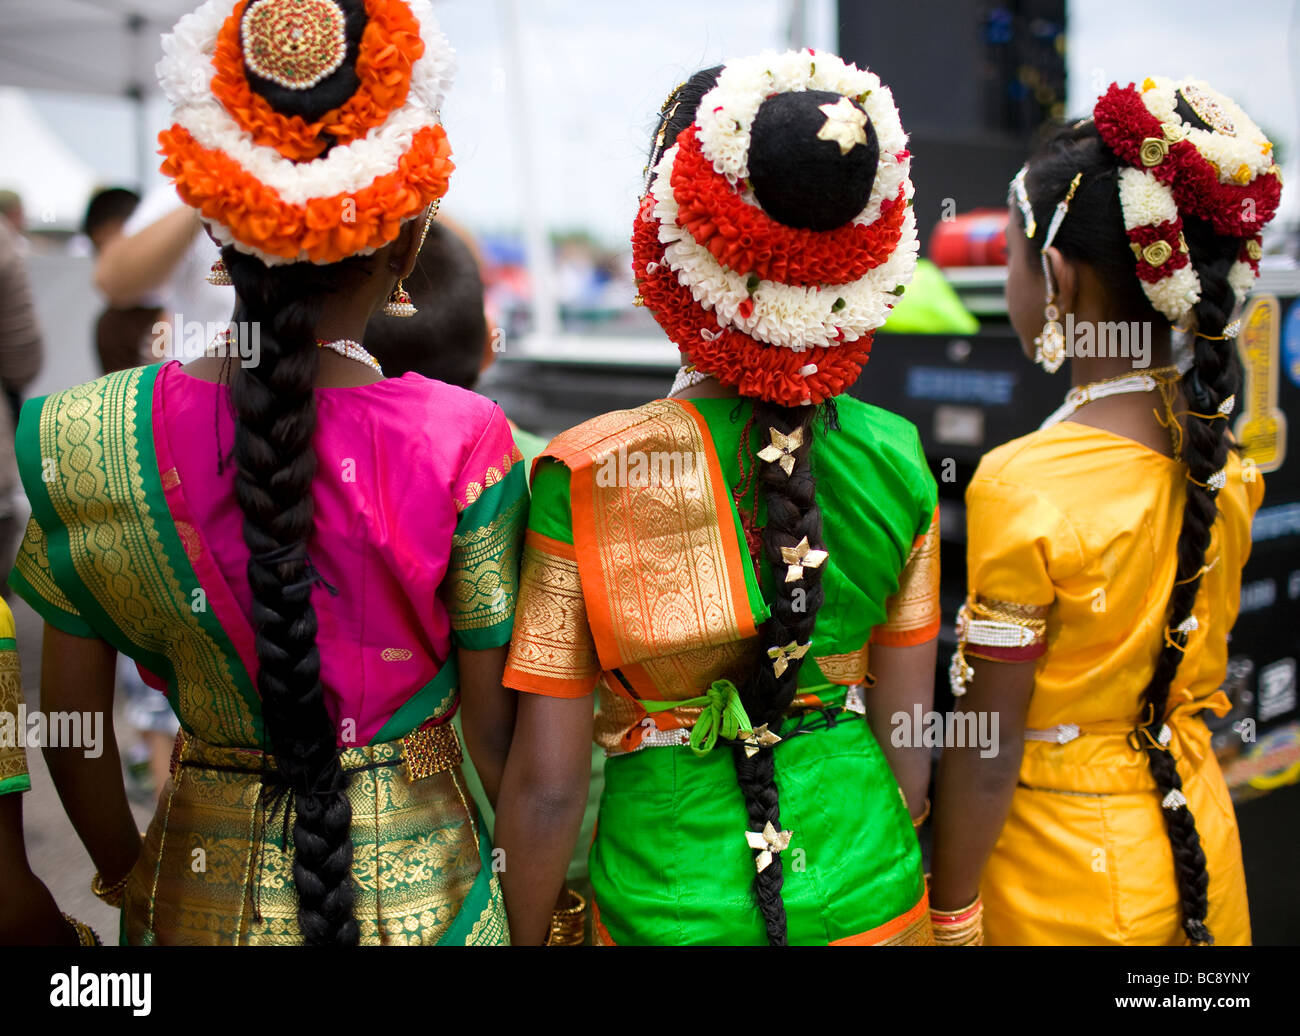 Three East Indian or Hindu girls wearing traditional headdresses waiting to perform at a festival. - Stock Image